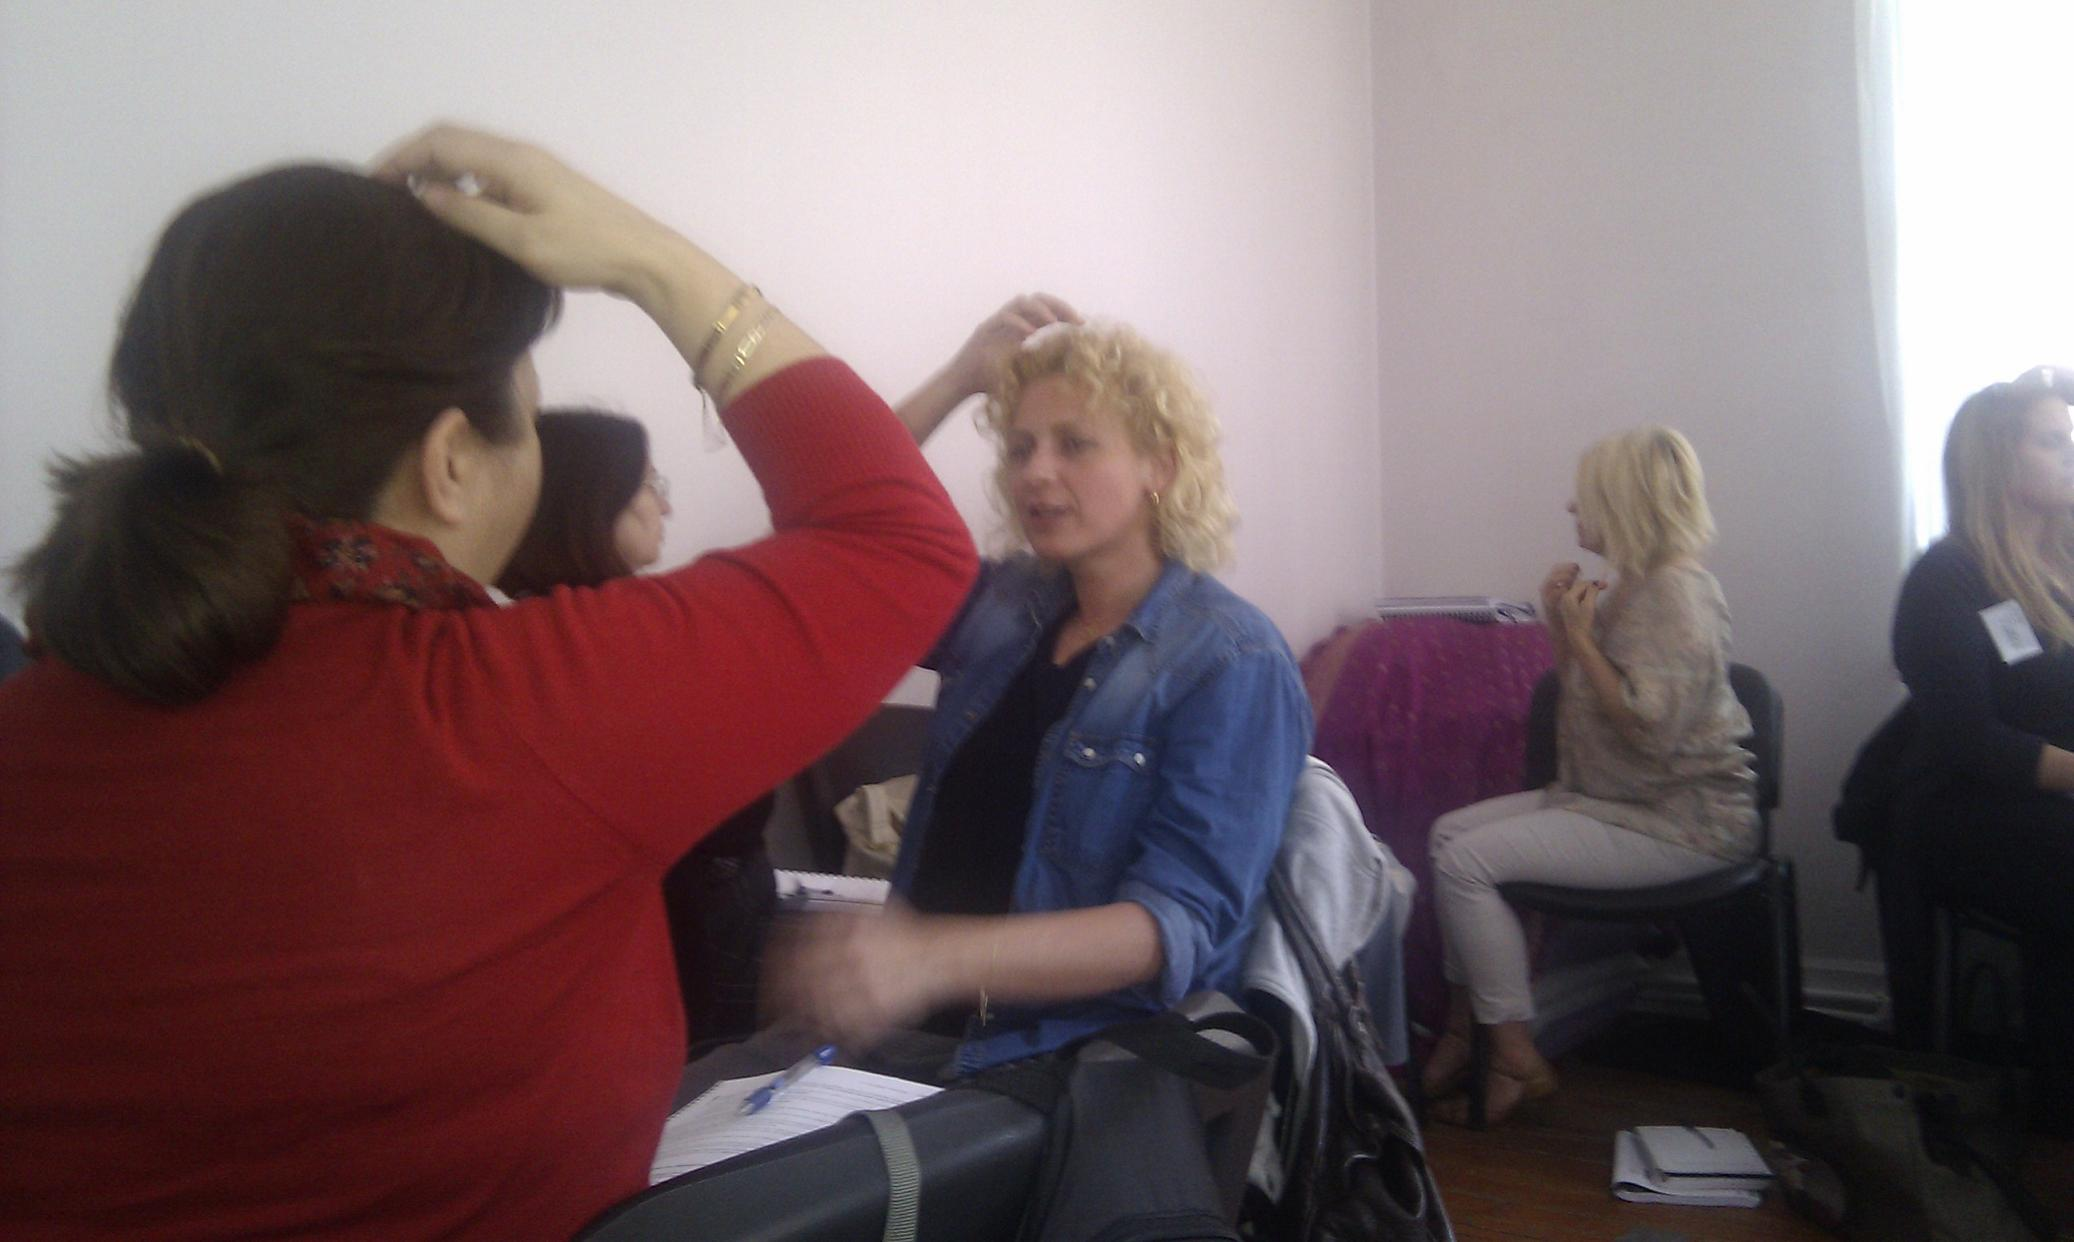 Handan and Berrak EFT Training at Radia Istanbul Turkey